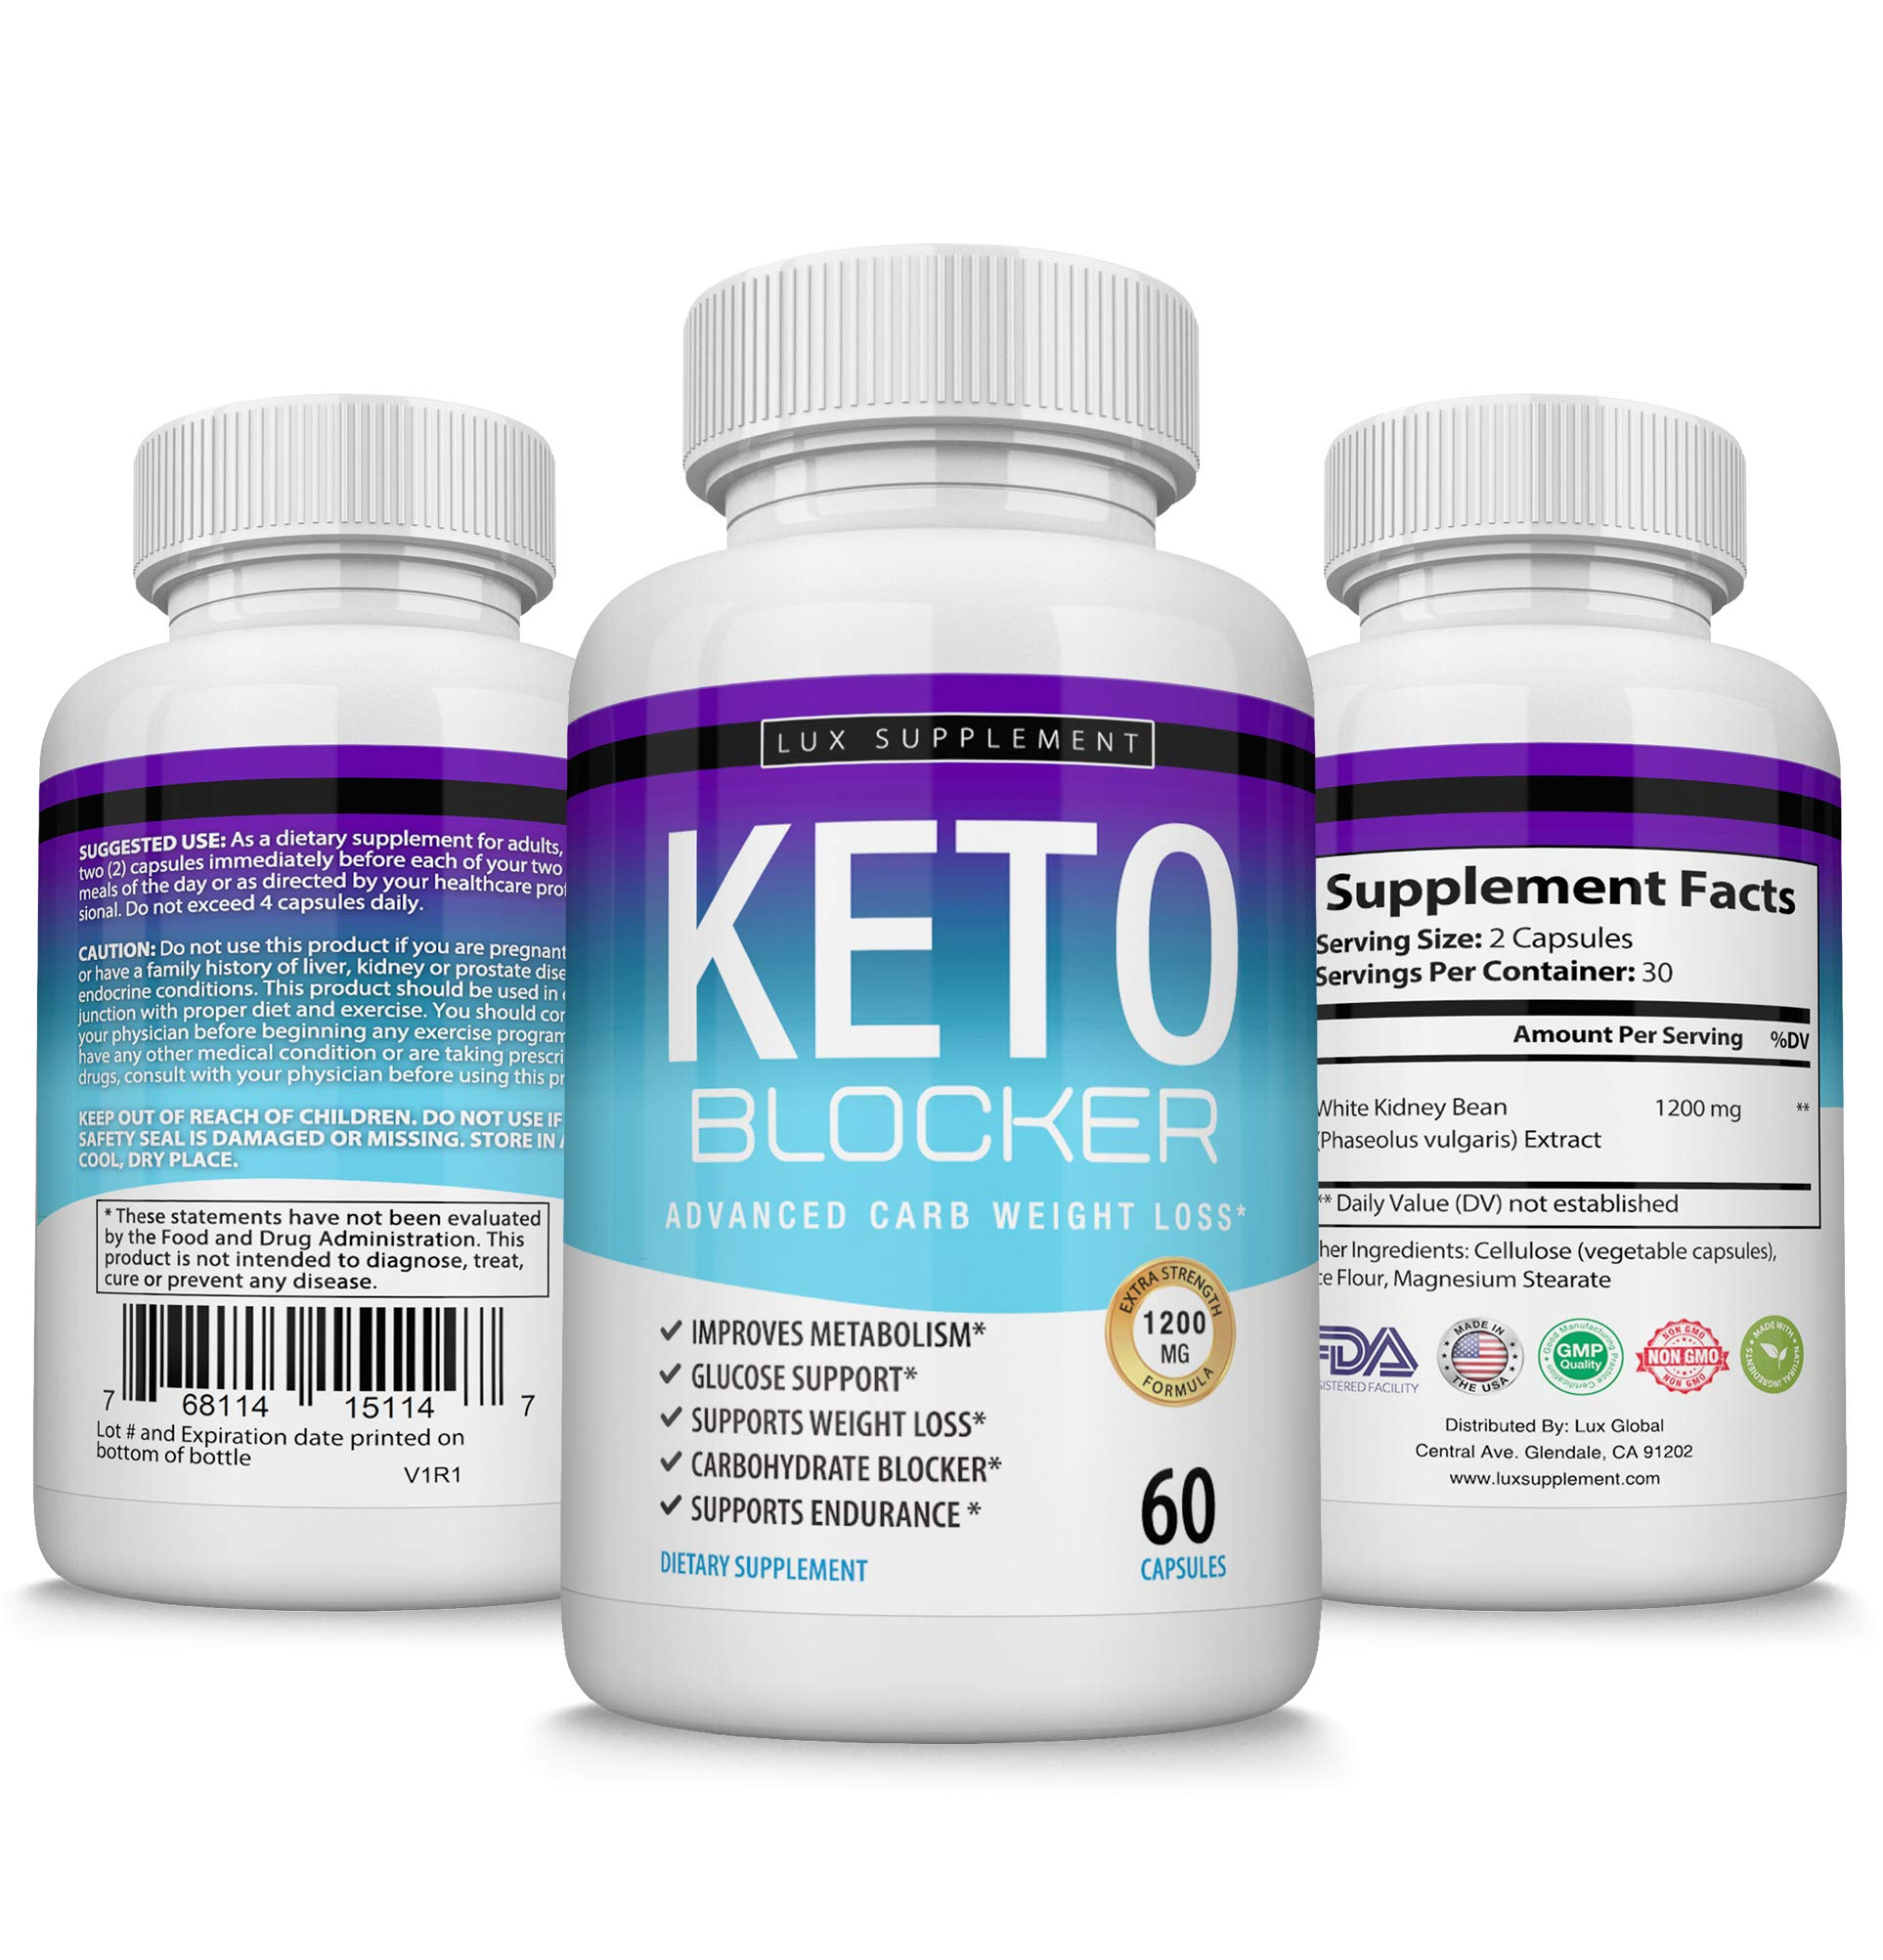 Keto Blocker Pills Advanced Carb Weight Loss - 1200 mg Natural Ketosis Fat Burner for ketogenic Diet, Suppress Appetite & Cravings, Boost Metabolism, Effective Men Women, 60 Capsules, Lux Supplement by Lux Supplement (Image #2)